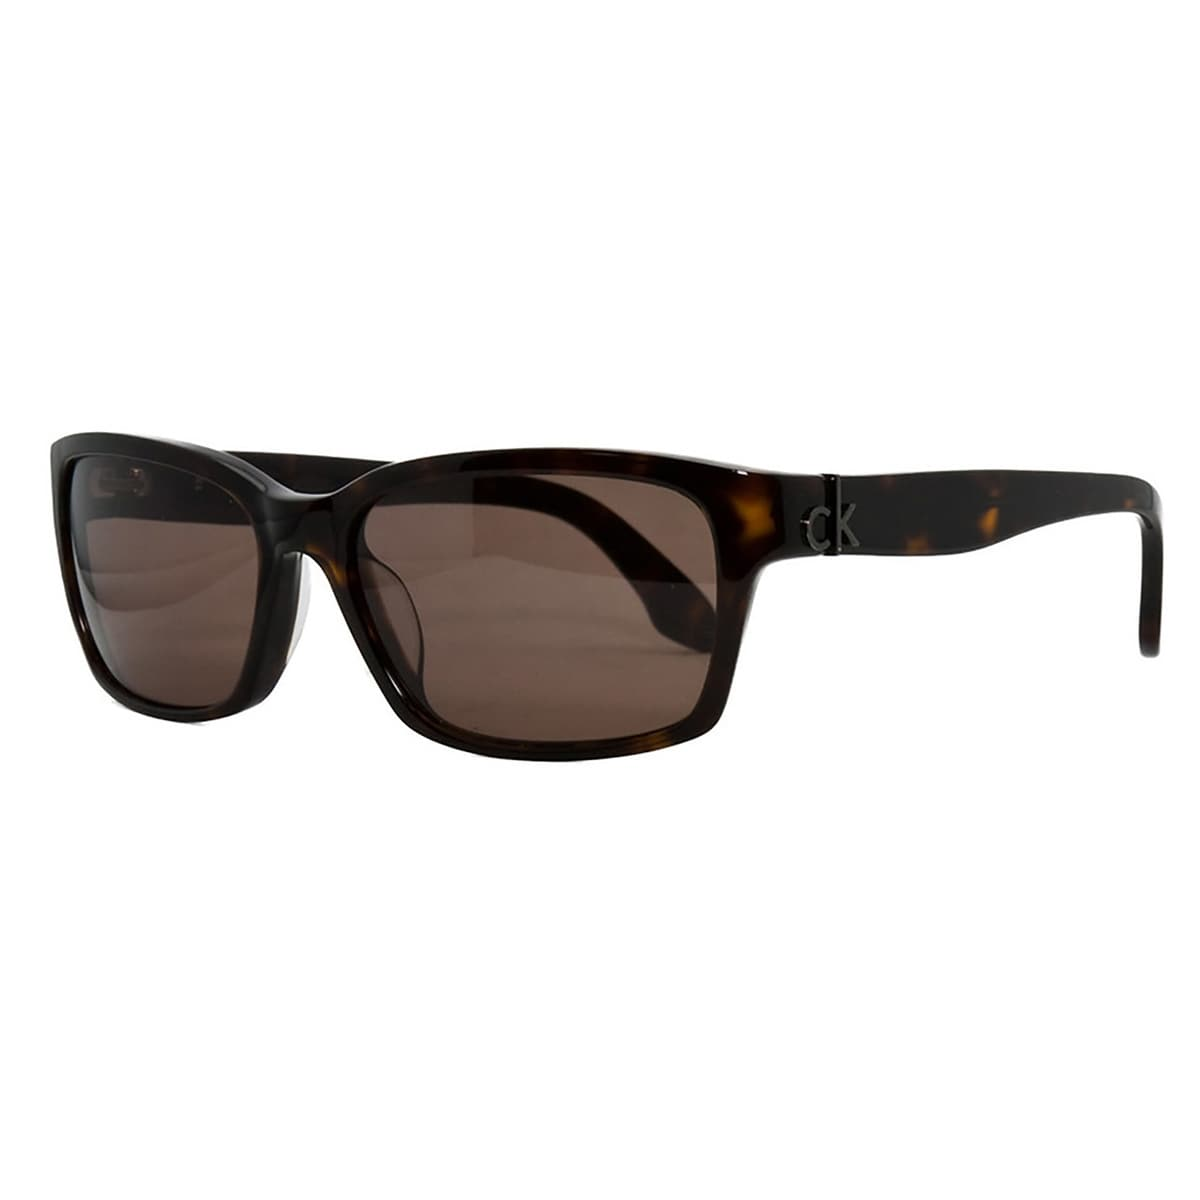 5597ce921b21 Shop Calvin Klein CK 4184 S 004 Havana Rectangular Sunglasses [Apparel] -  Free Shipping On Orders Over $45 - Overstock - 13402317